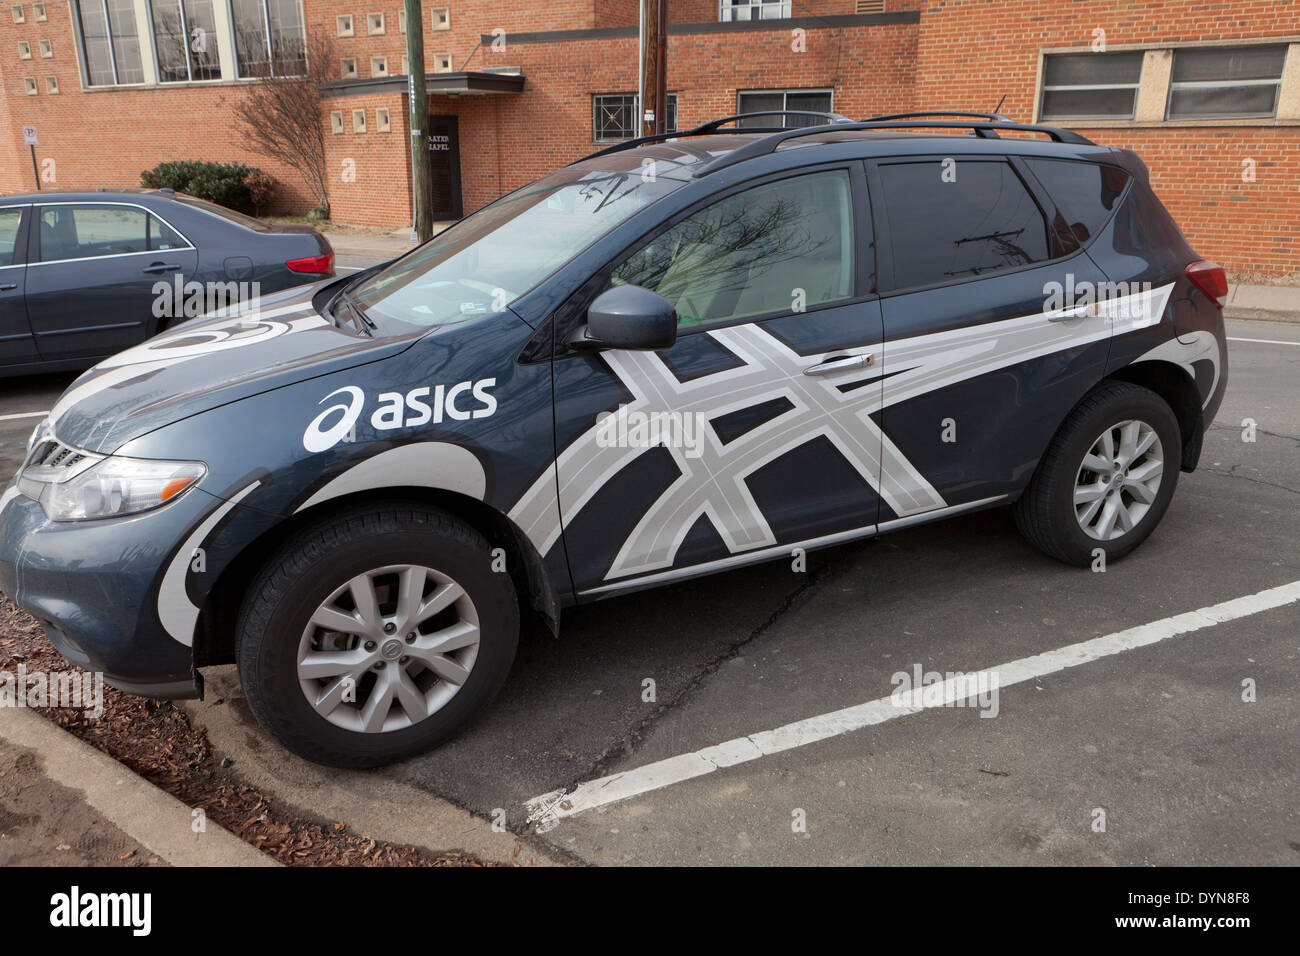 Asics promotion car - Stock Image